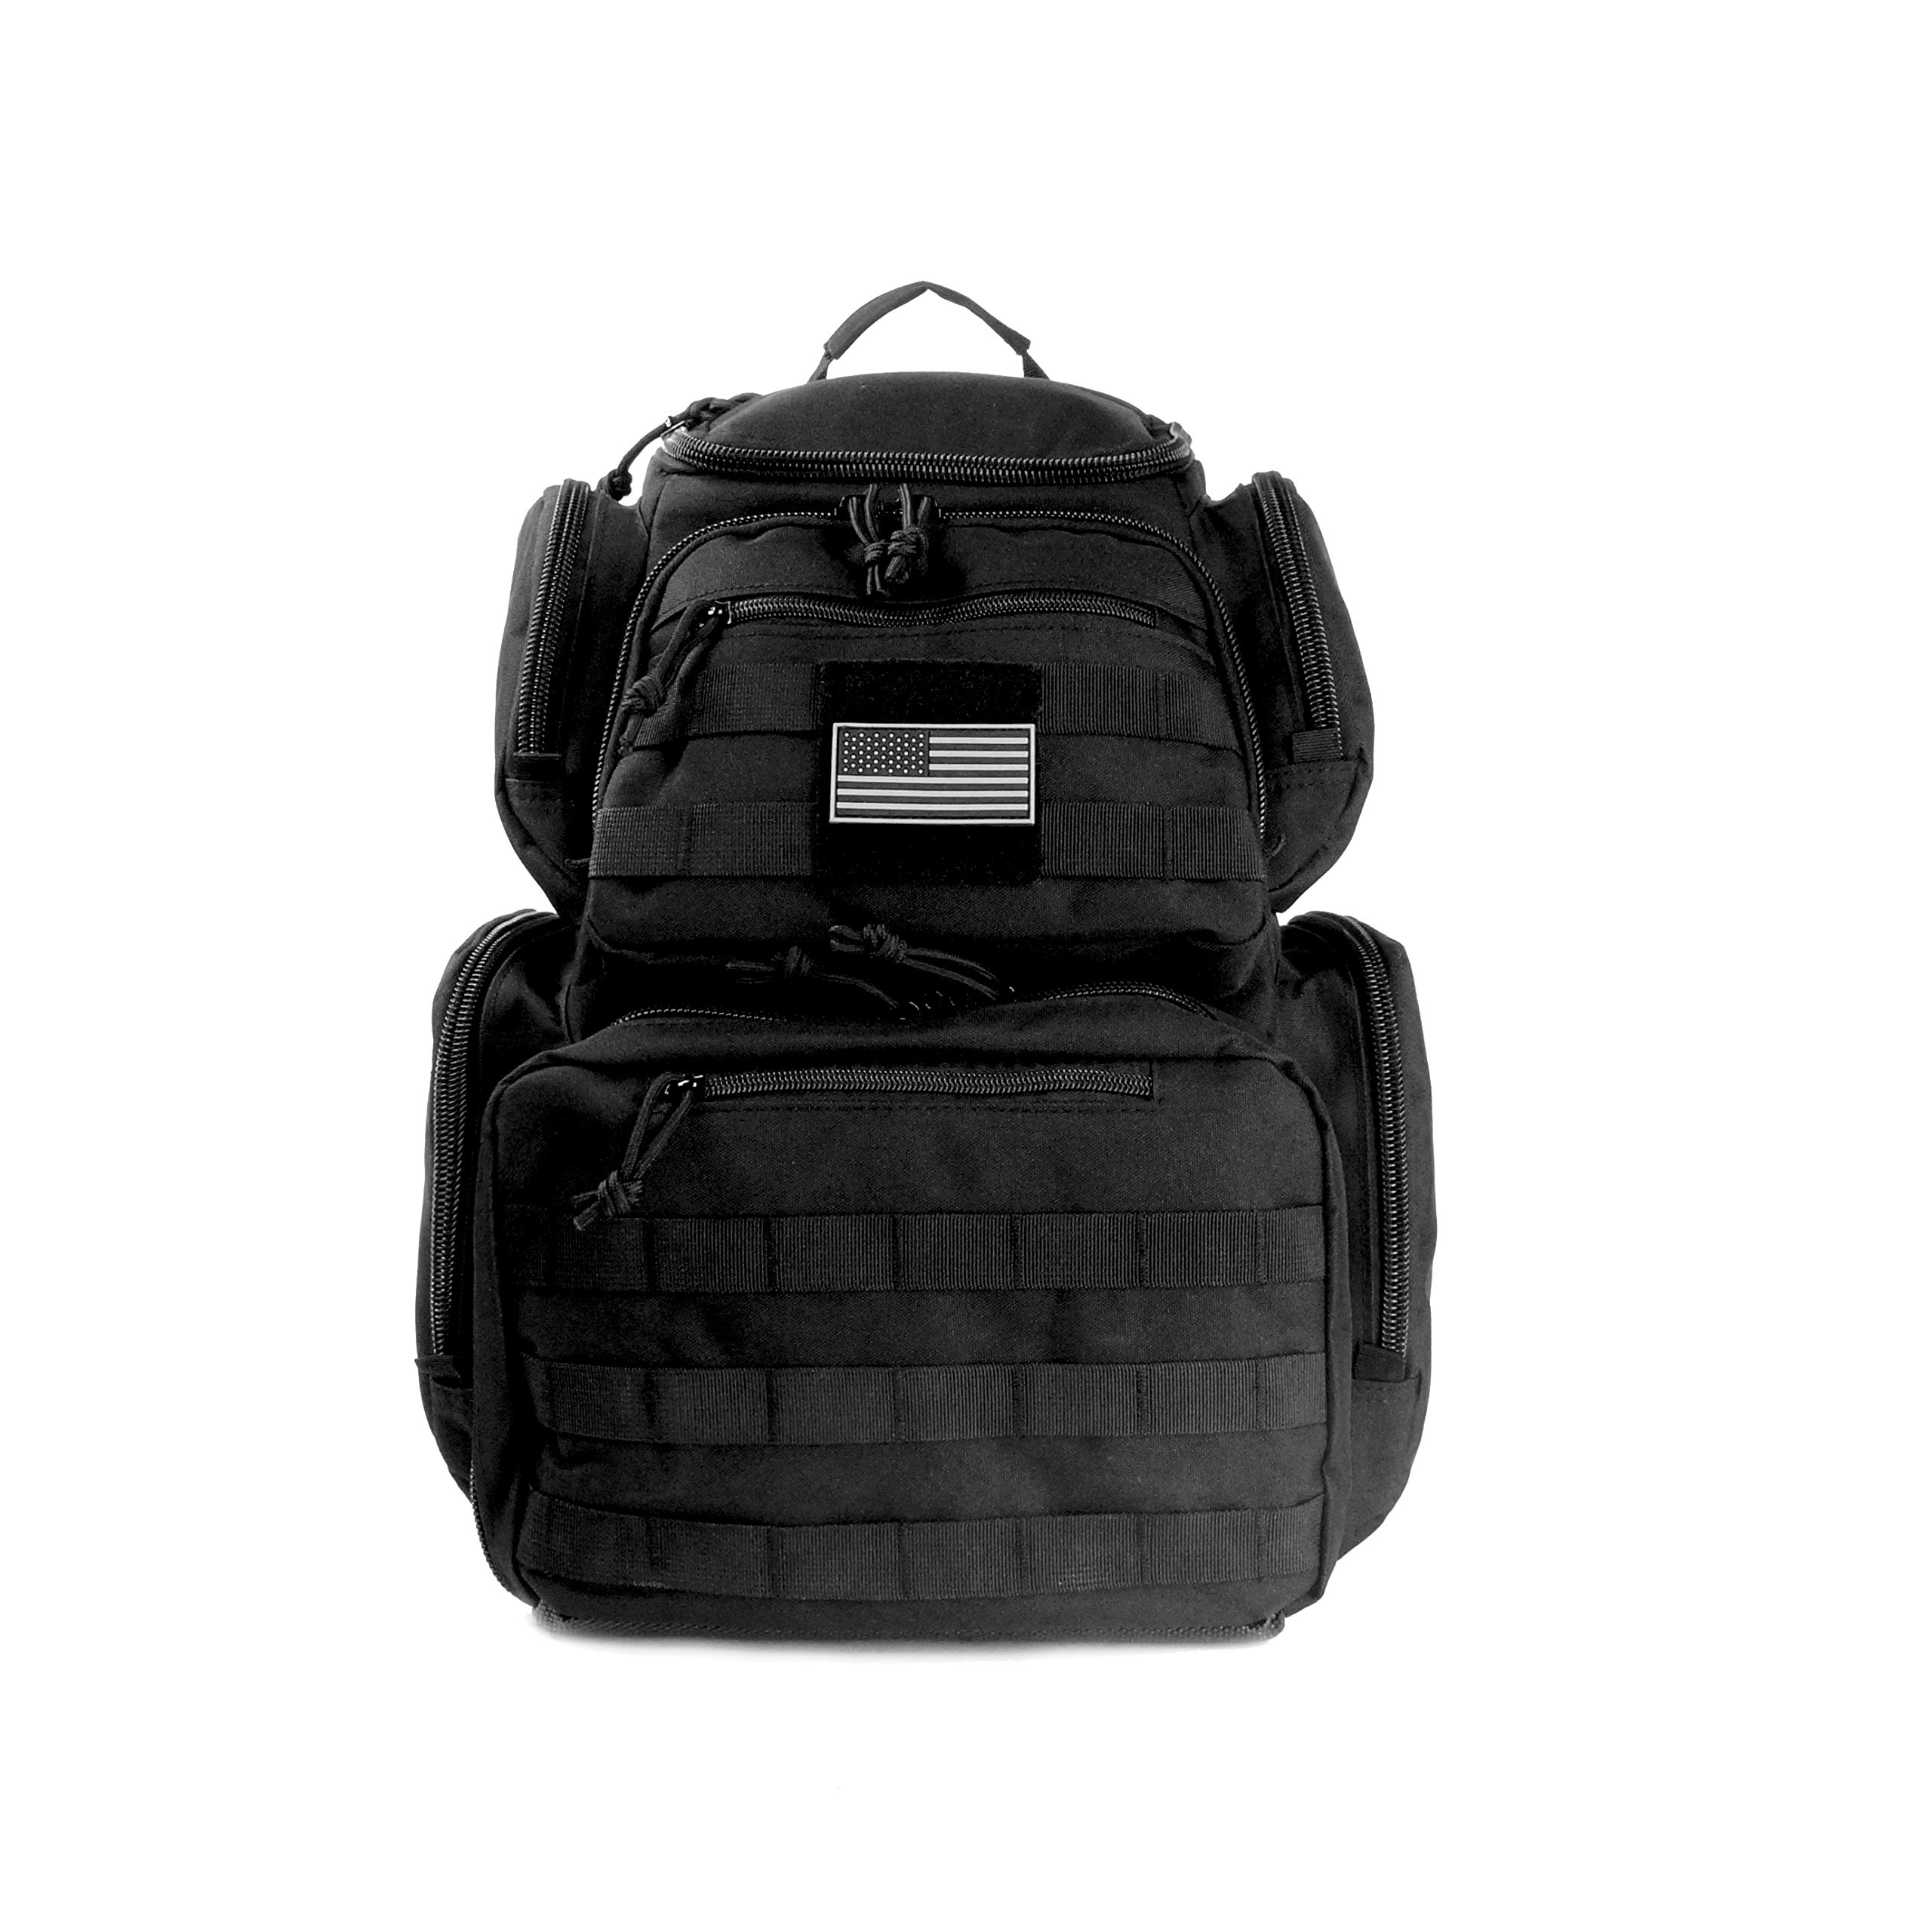 Tactical Backpack Military Gear Carries 5 Handguns Multi-Functional Ammo Pouches And Magazine Pockets for Pistols Thick Heavy Duty Materials Perfect for Camping, Hiking, Trekking Unisex Gun Range Bag by NiceAndGreat